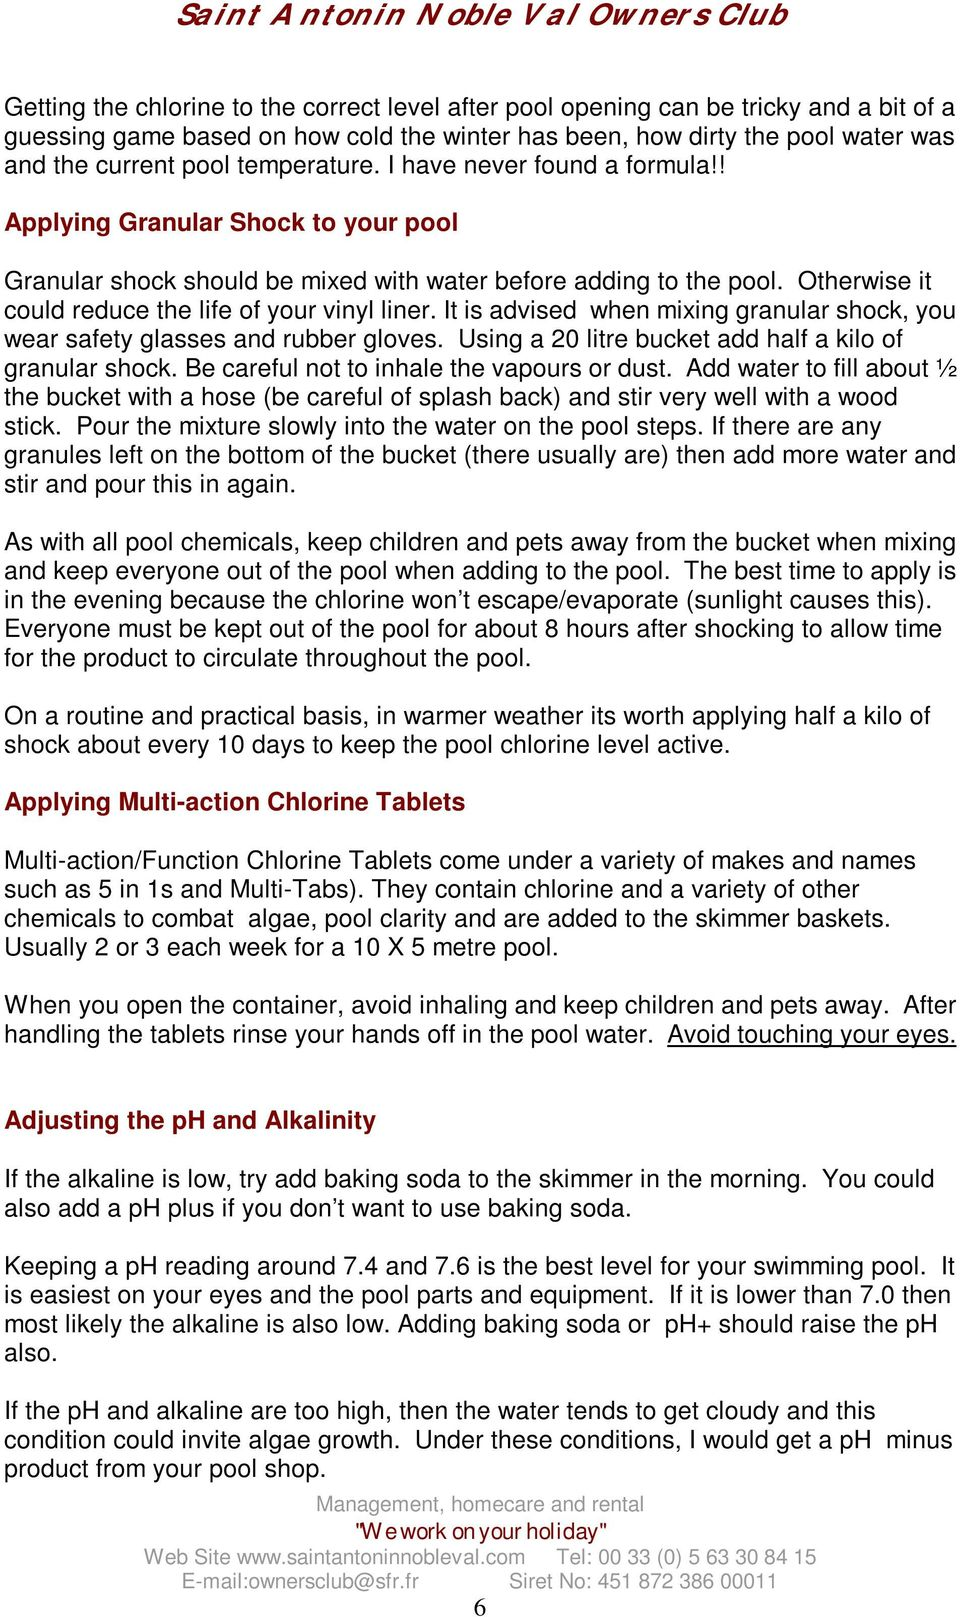 A Guide to looking after your swimming pool - PDF